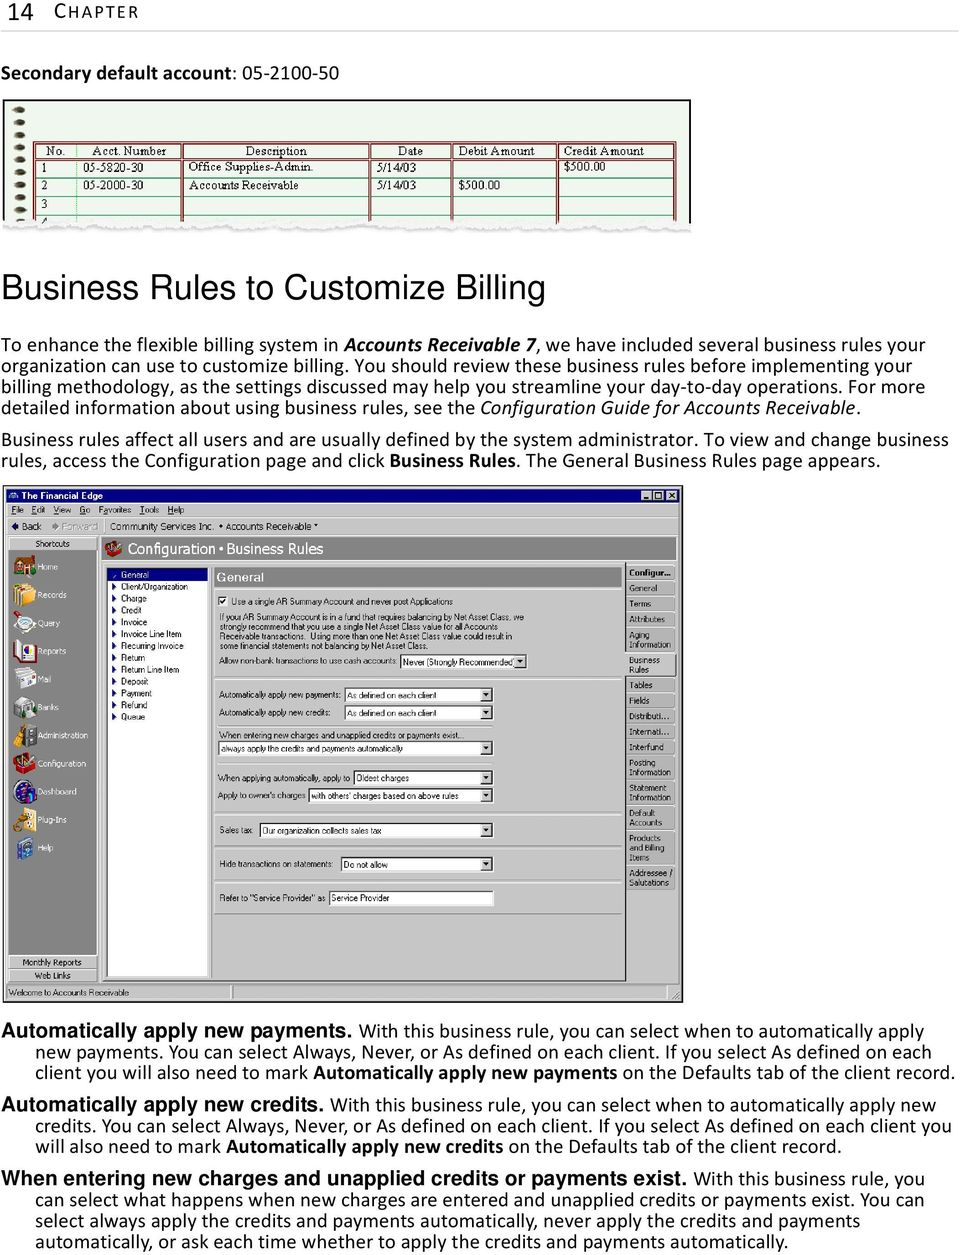 You should review these business rules before implementing your billing methodology, as the settings discussed may help you streamline your day-to-day operations.